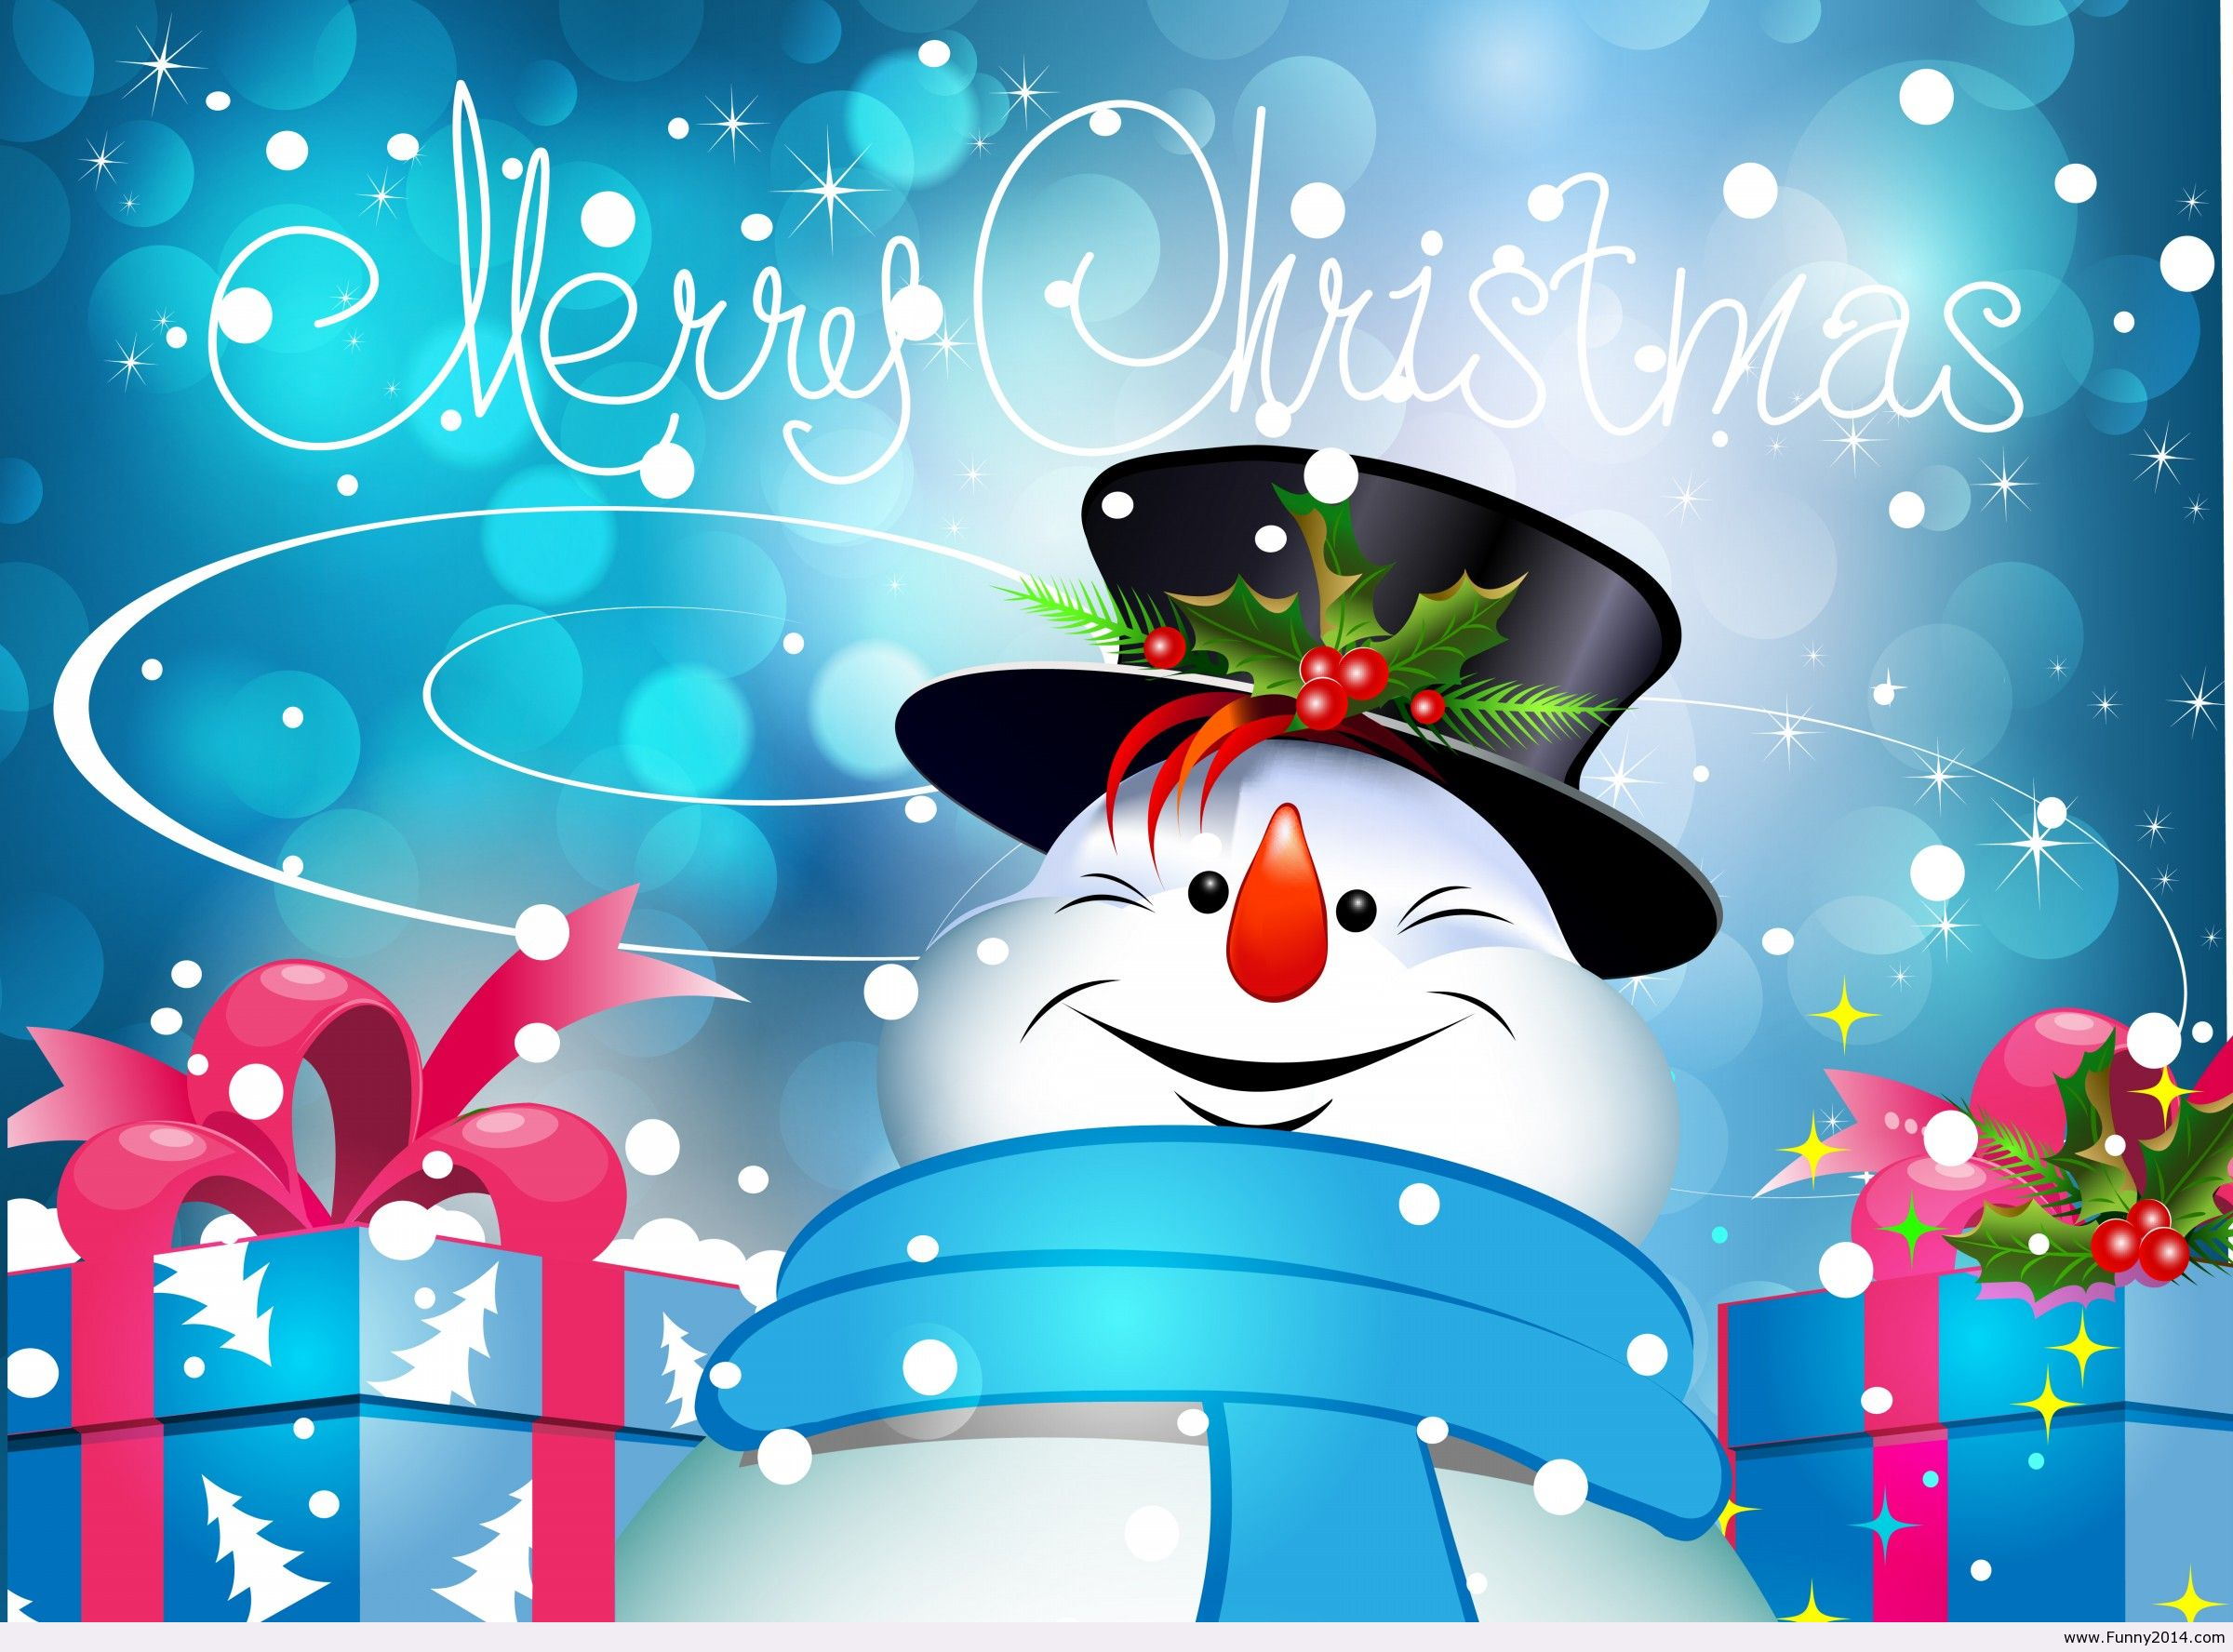 bliss 2015 merry christmas wallpapers hd happy xmas